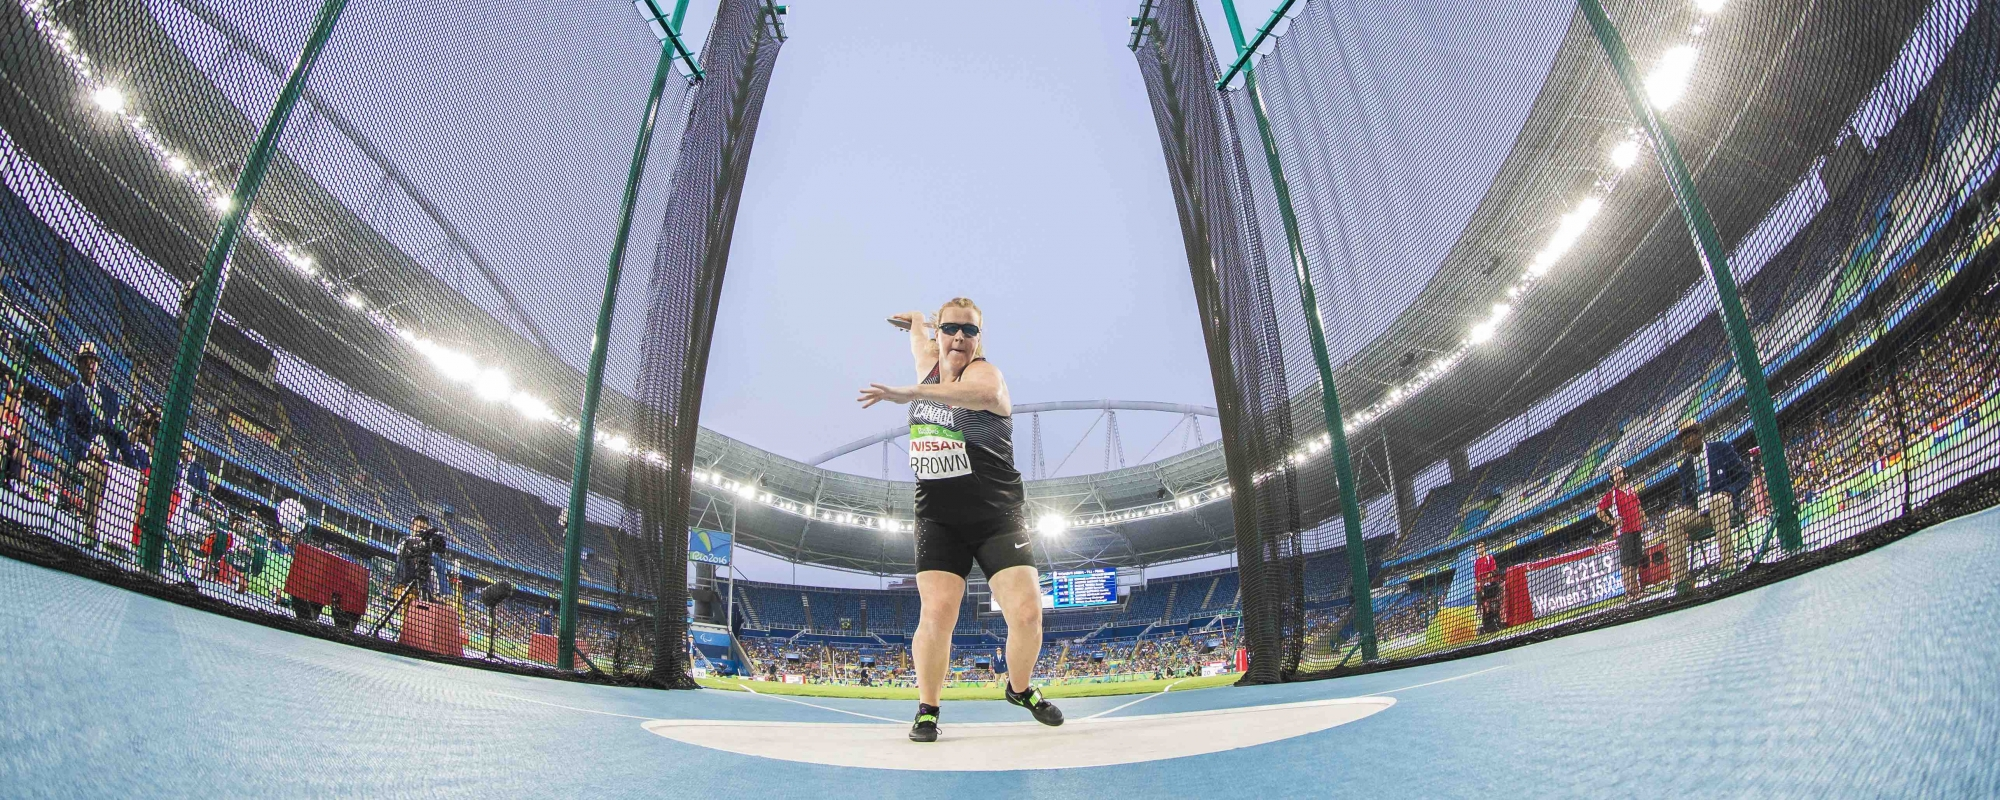 Jen Brown throwing a discuss in Rio from a fish lense camera showing the grandeur of the space